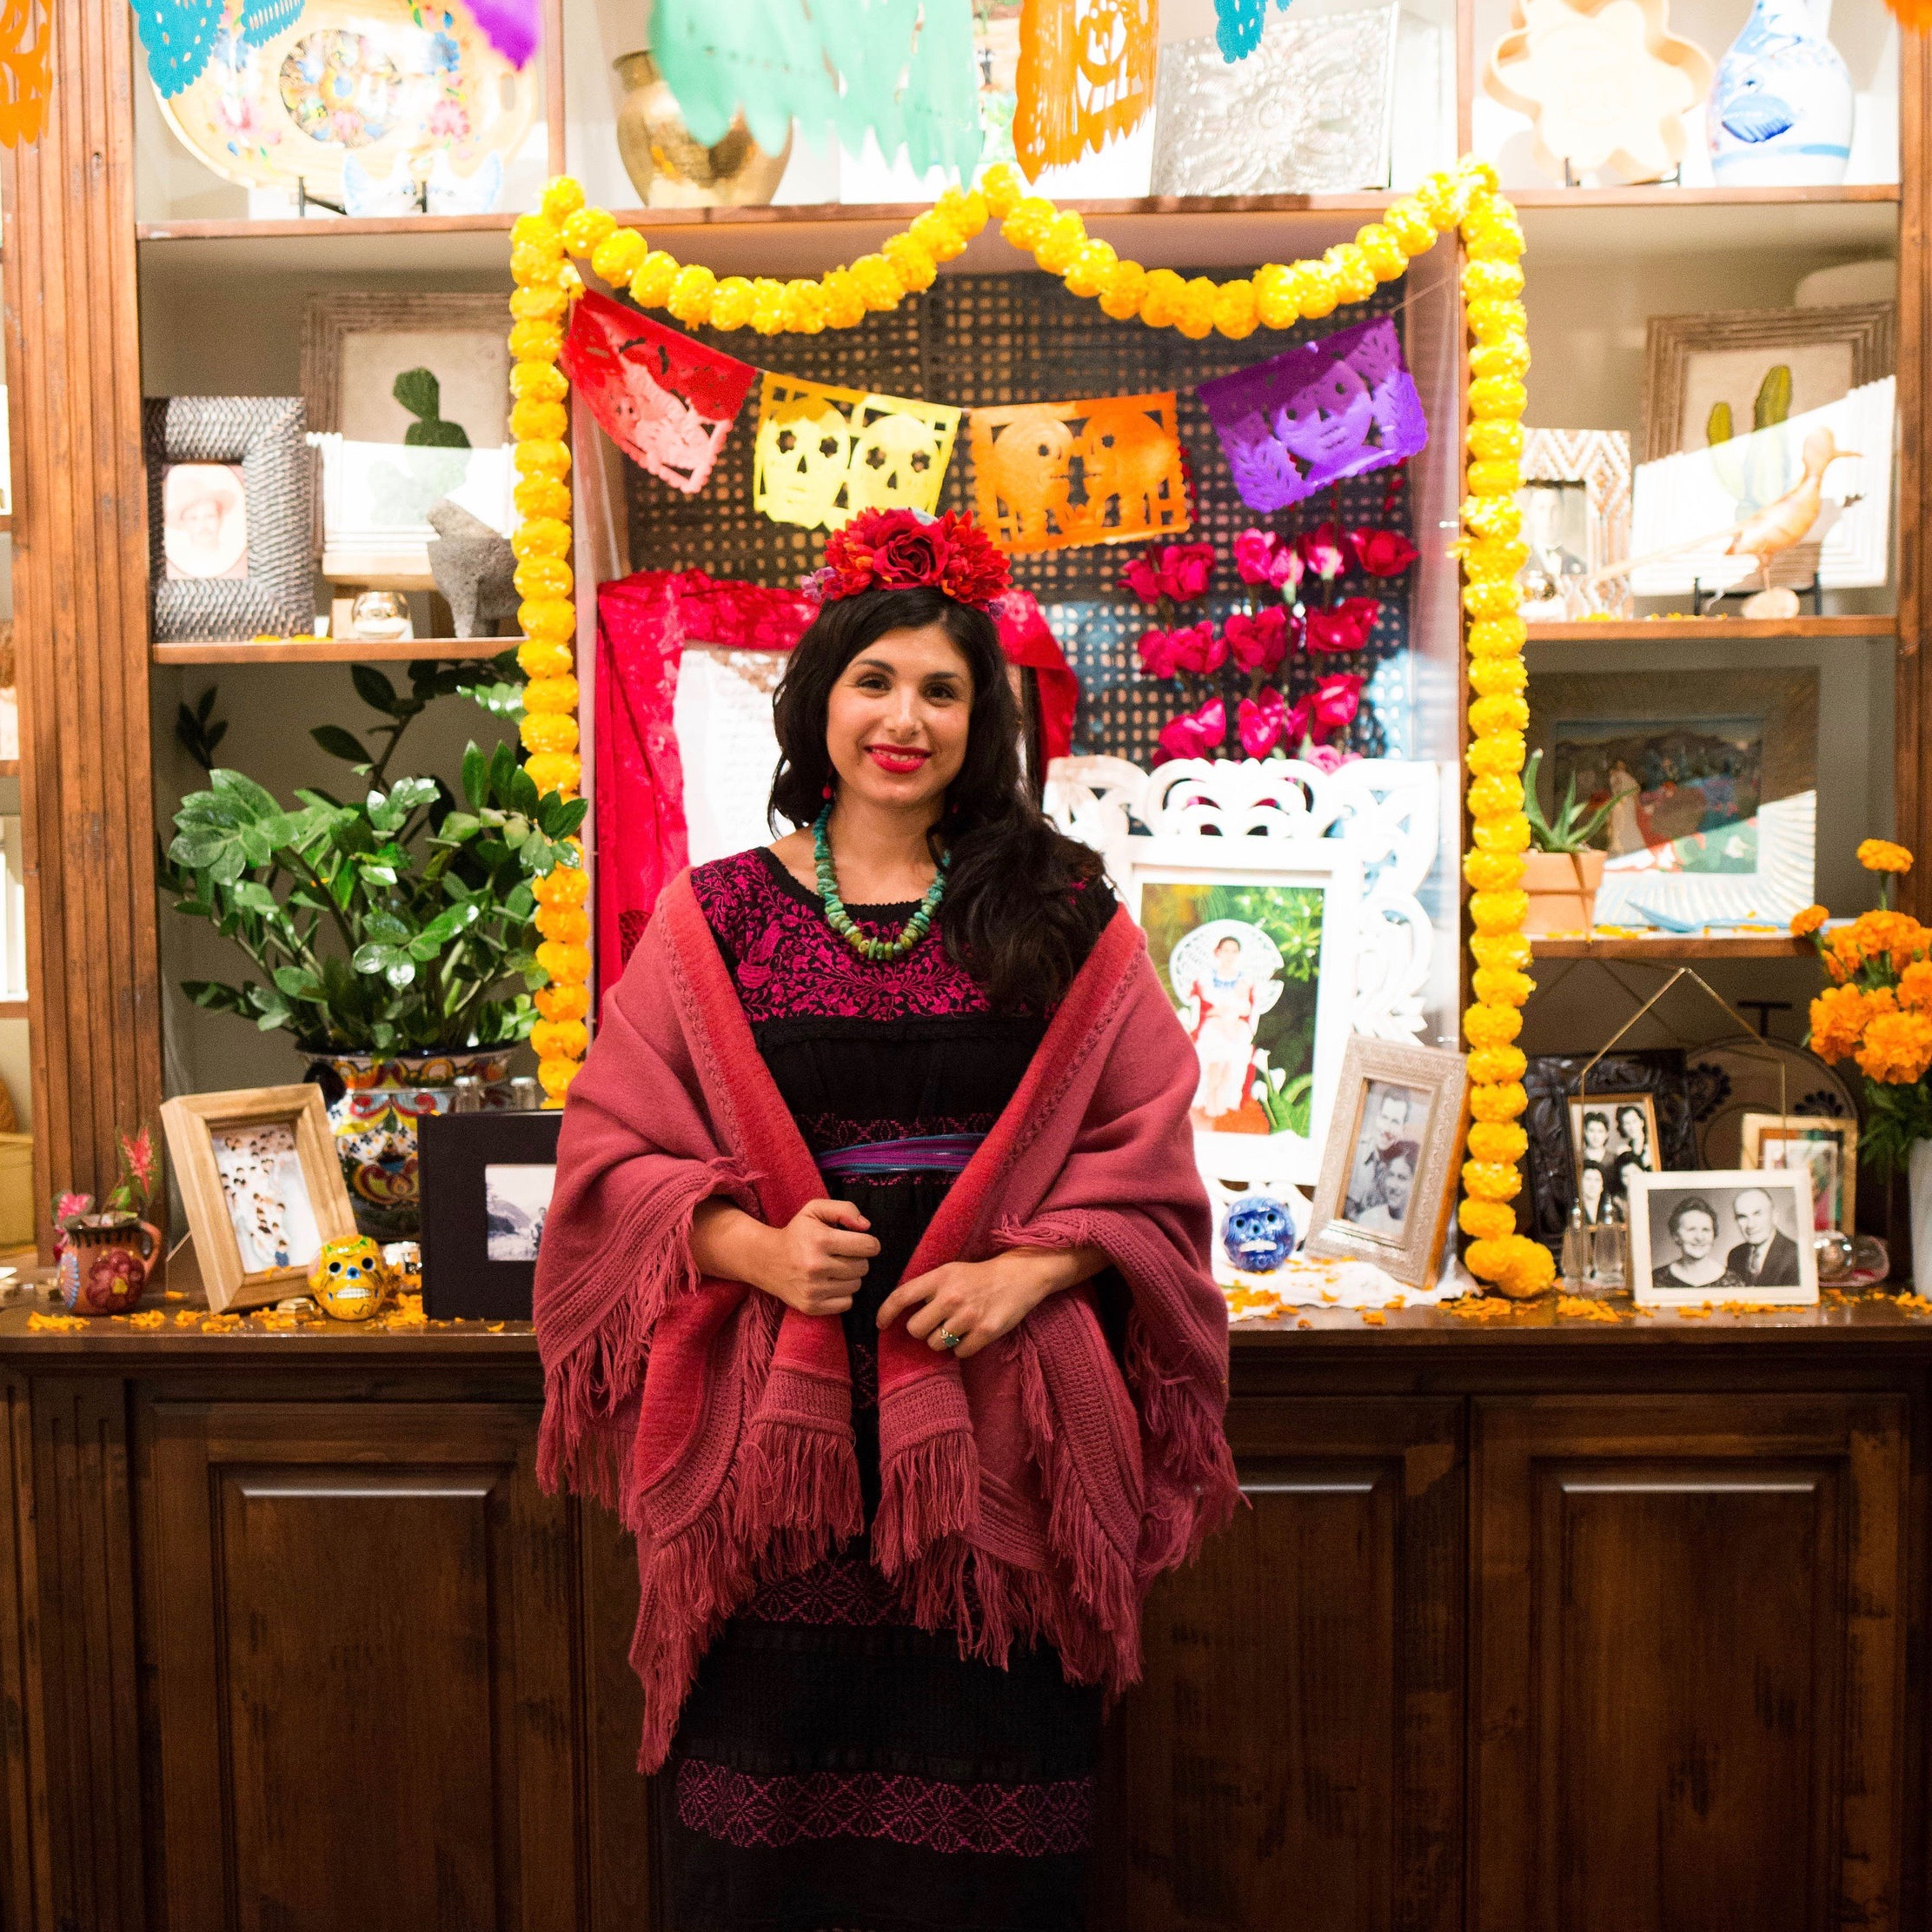 Michelle is wearing a red dress and rebozo. She has red flowers in her hair and she's standing in front of a Dia de los Muertos ofrenda.